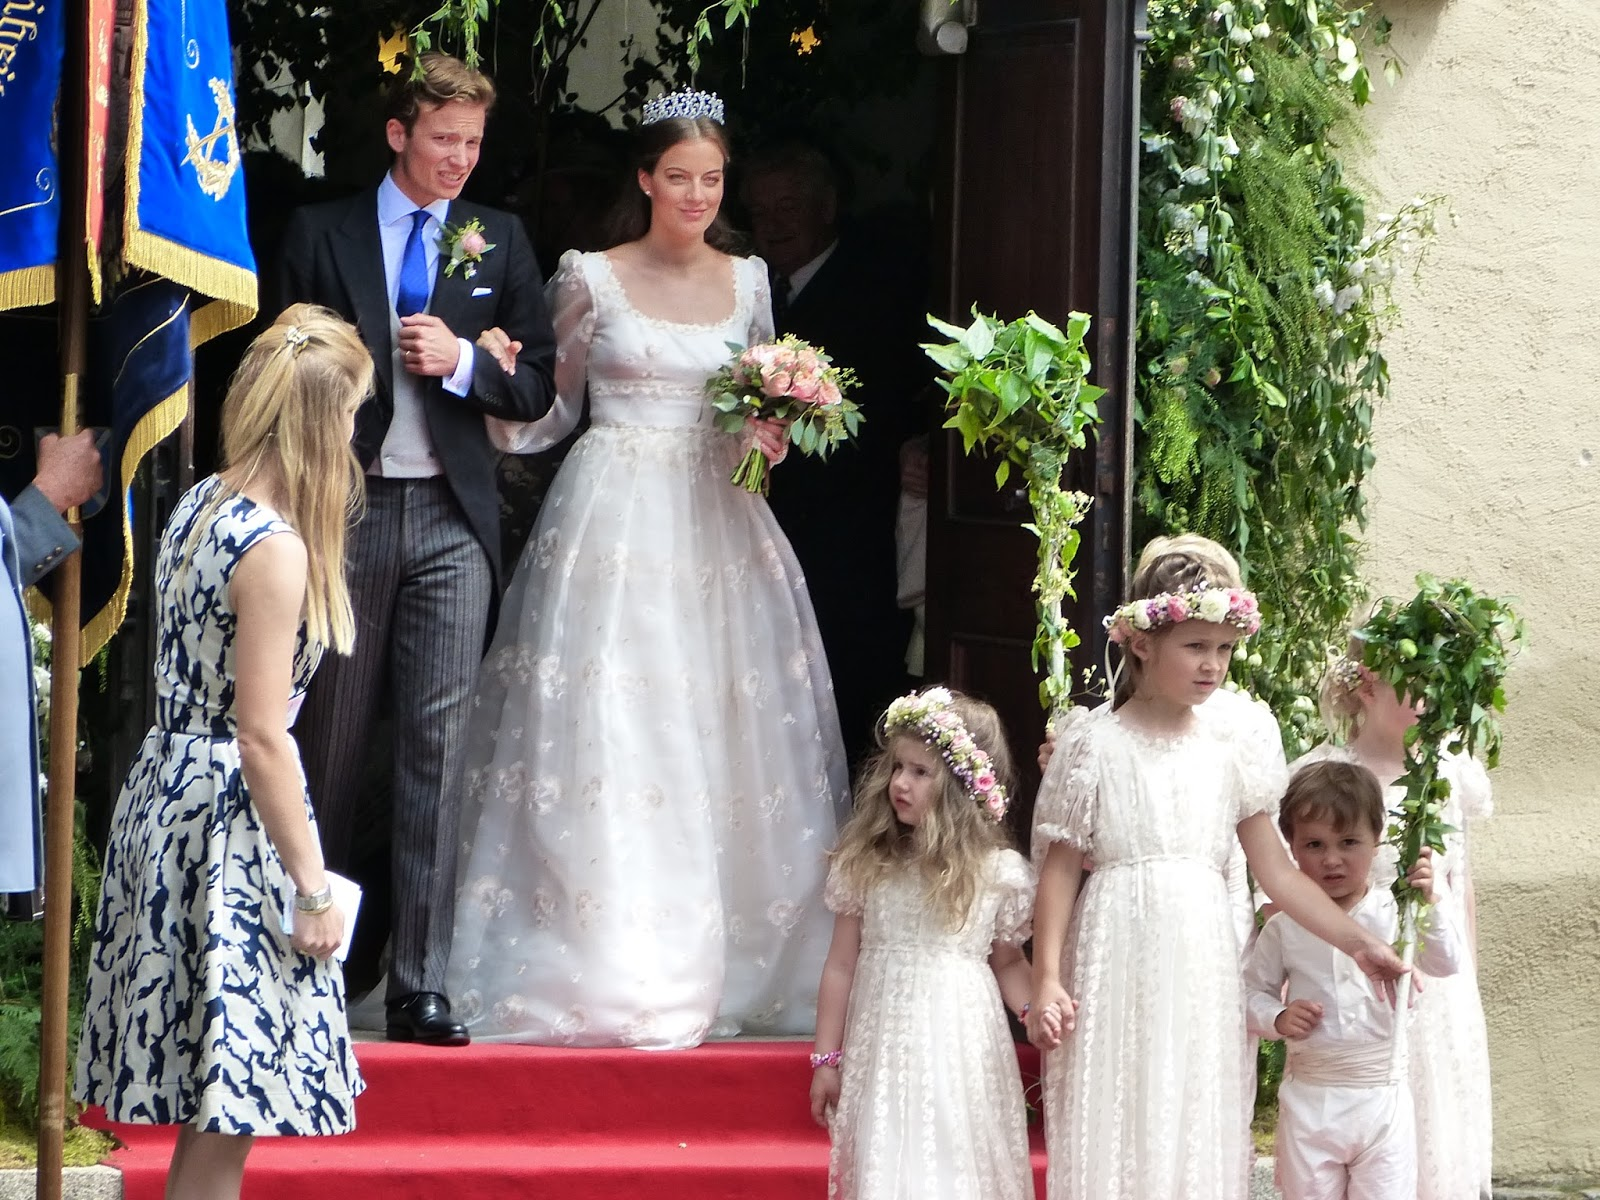 Cleo Von Adelsheim Hochzeit Royal Musings The Wedding Of The Hereditary Prince Of